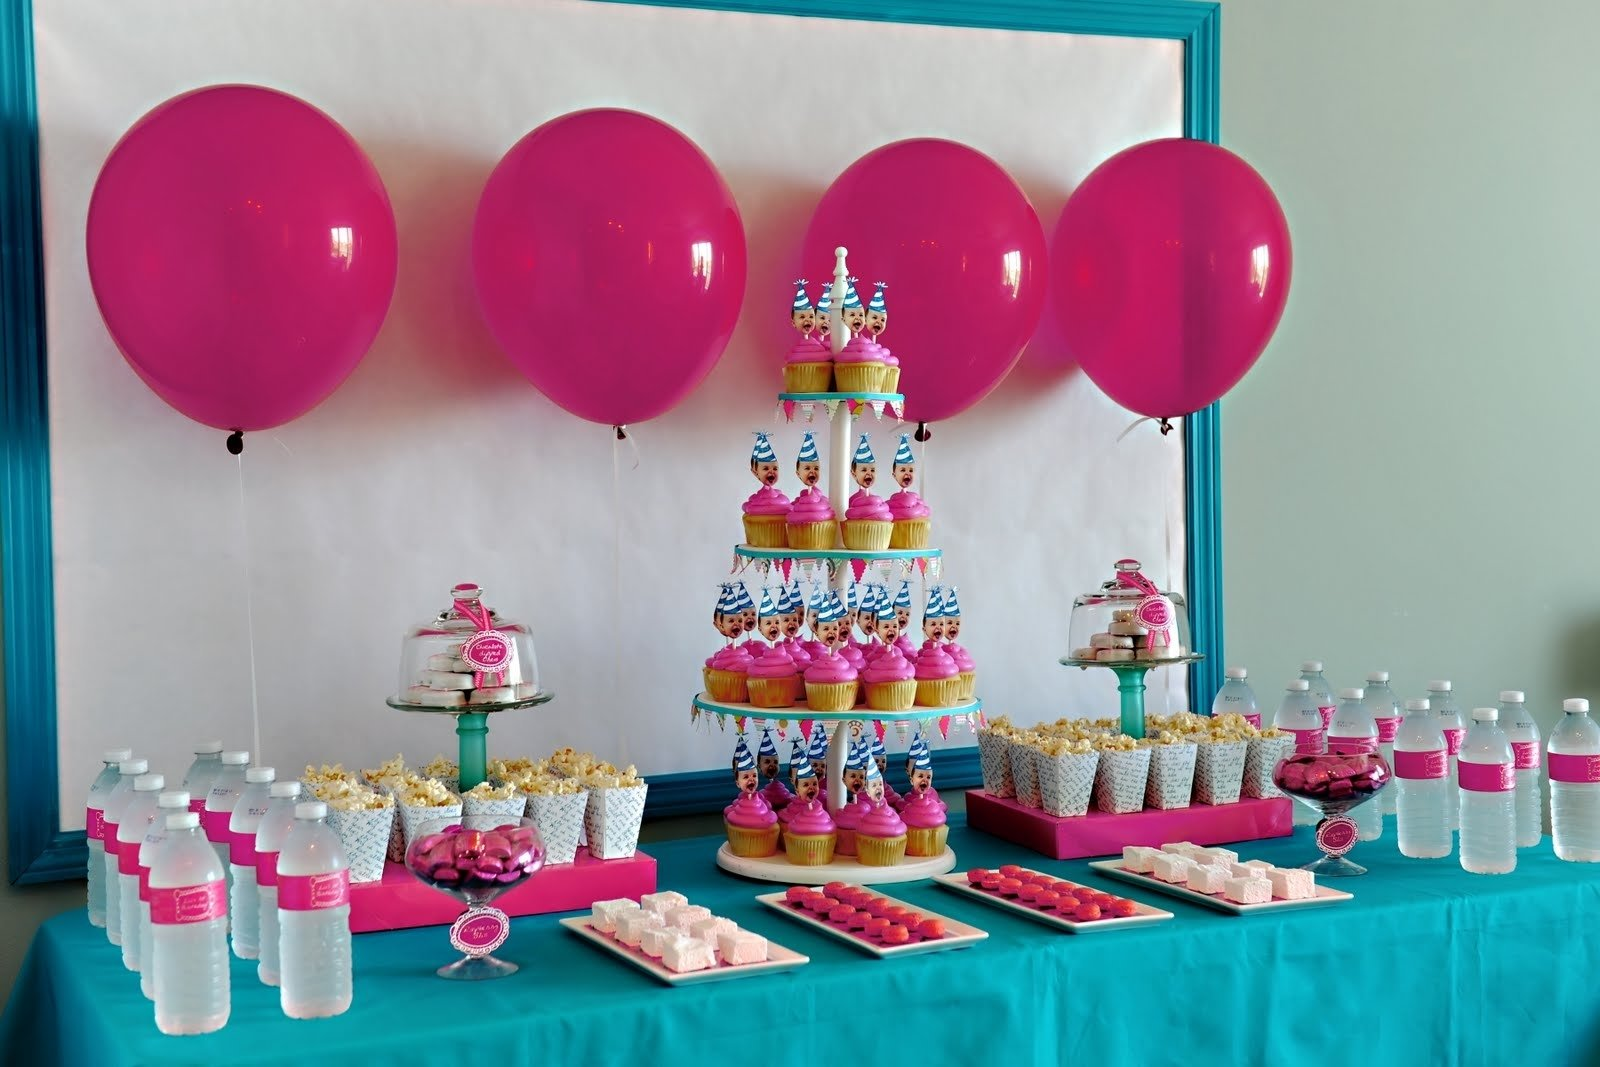 10 Fabulous 9 Year Old Girl Party Ideas themes birthday 4 year old little girl birthday party ideas themes 4 2020